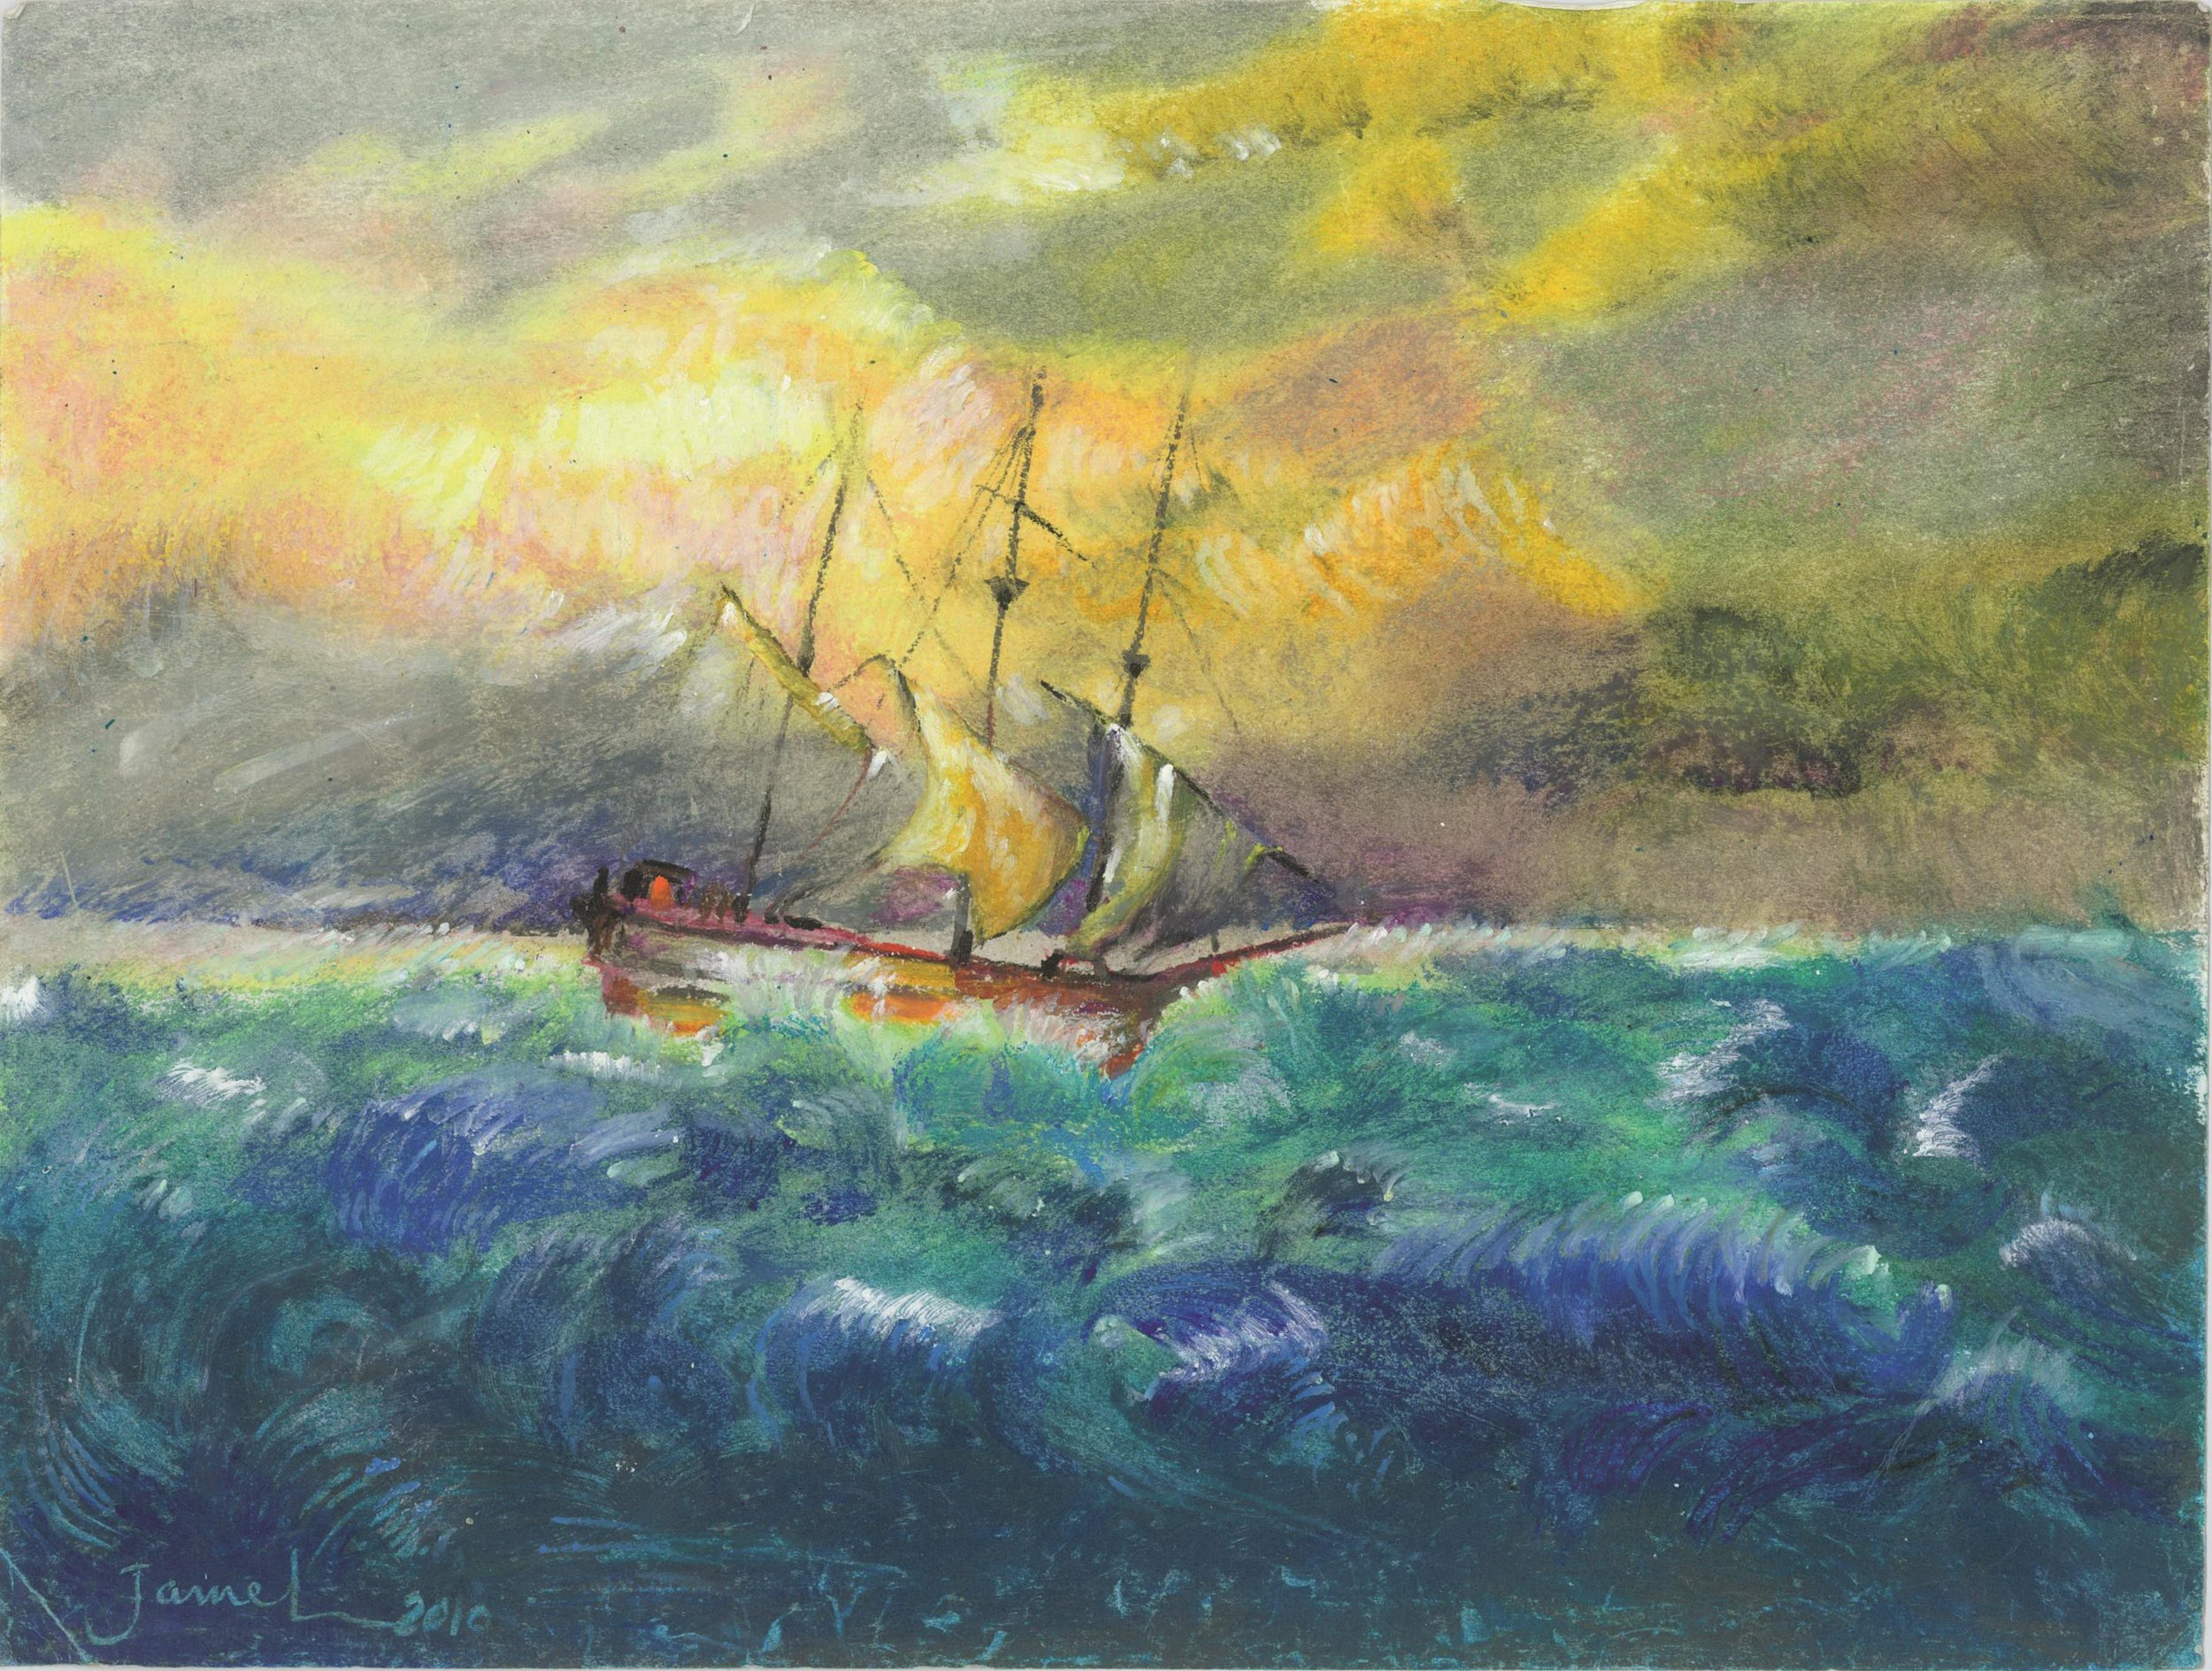 Djamel Ameziane, Ship Sailing in a Stormy Sea, 2010.